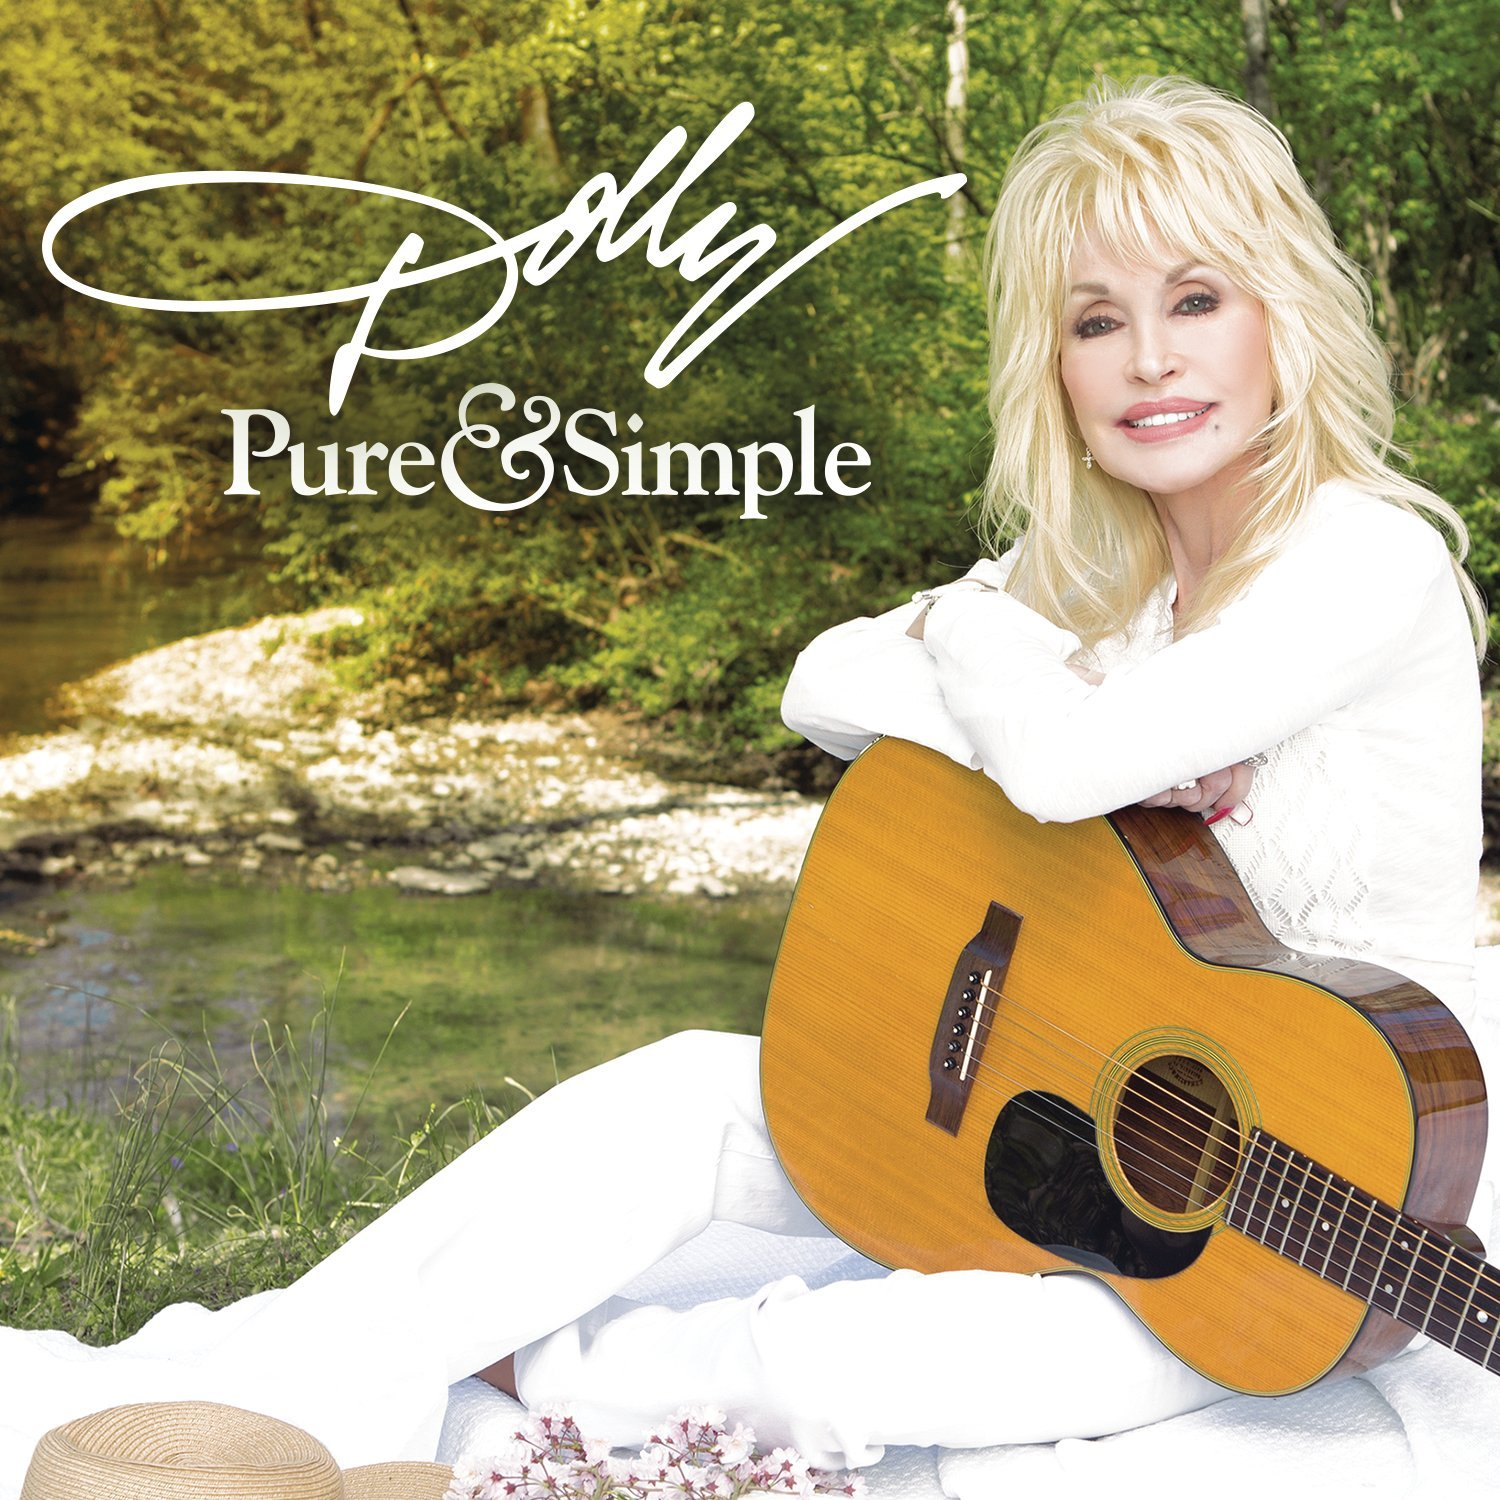 Dolly Parton's New Album 'Pure & Simple' is Out Now!